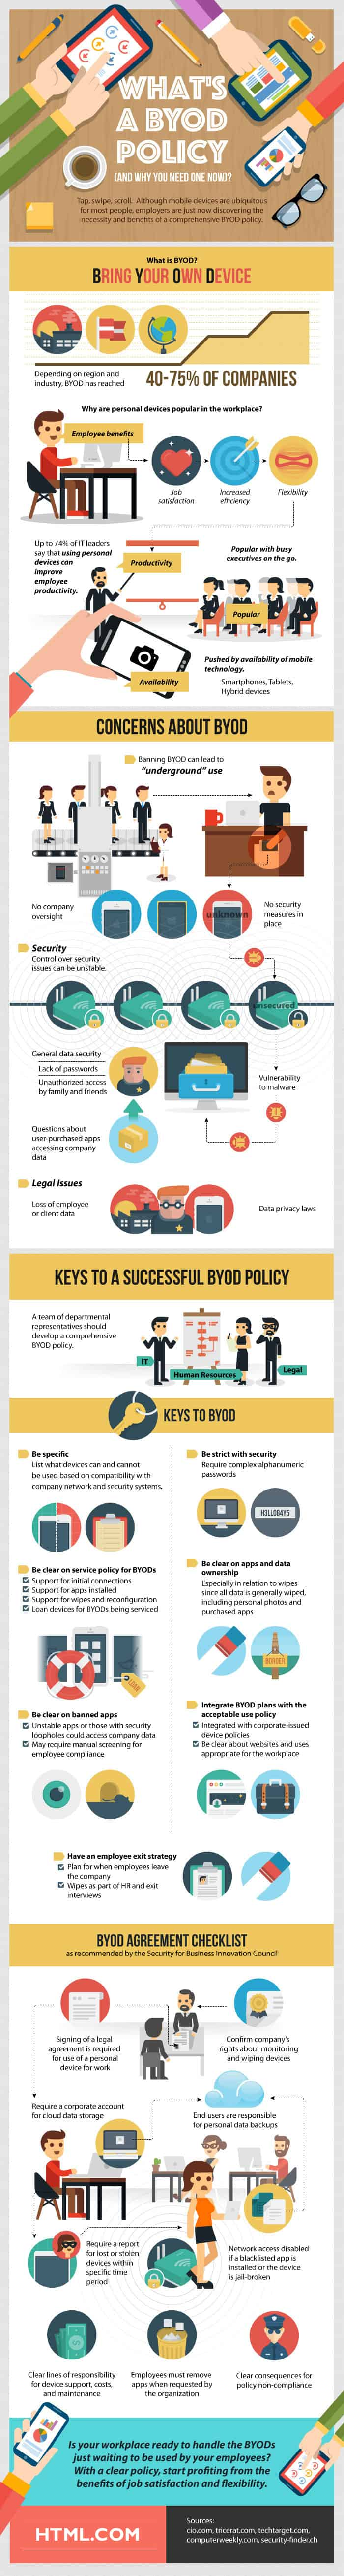 How to Establish a BYOD Policy